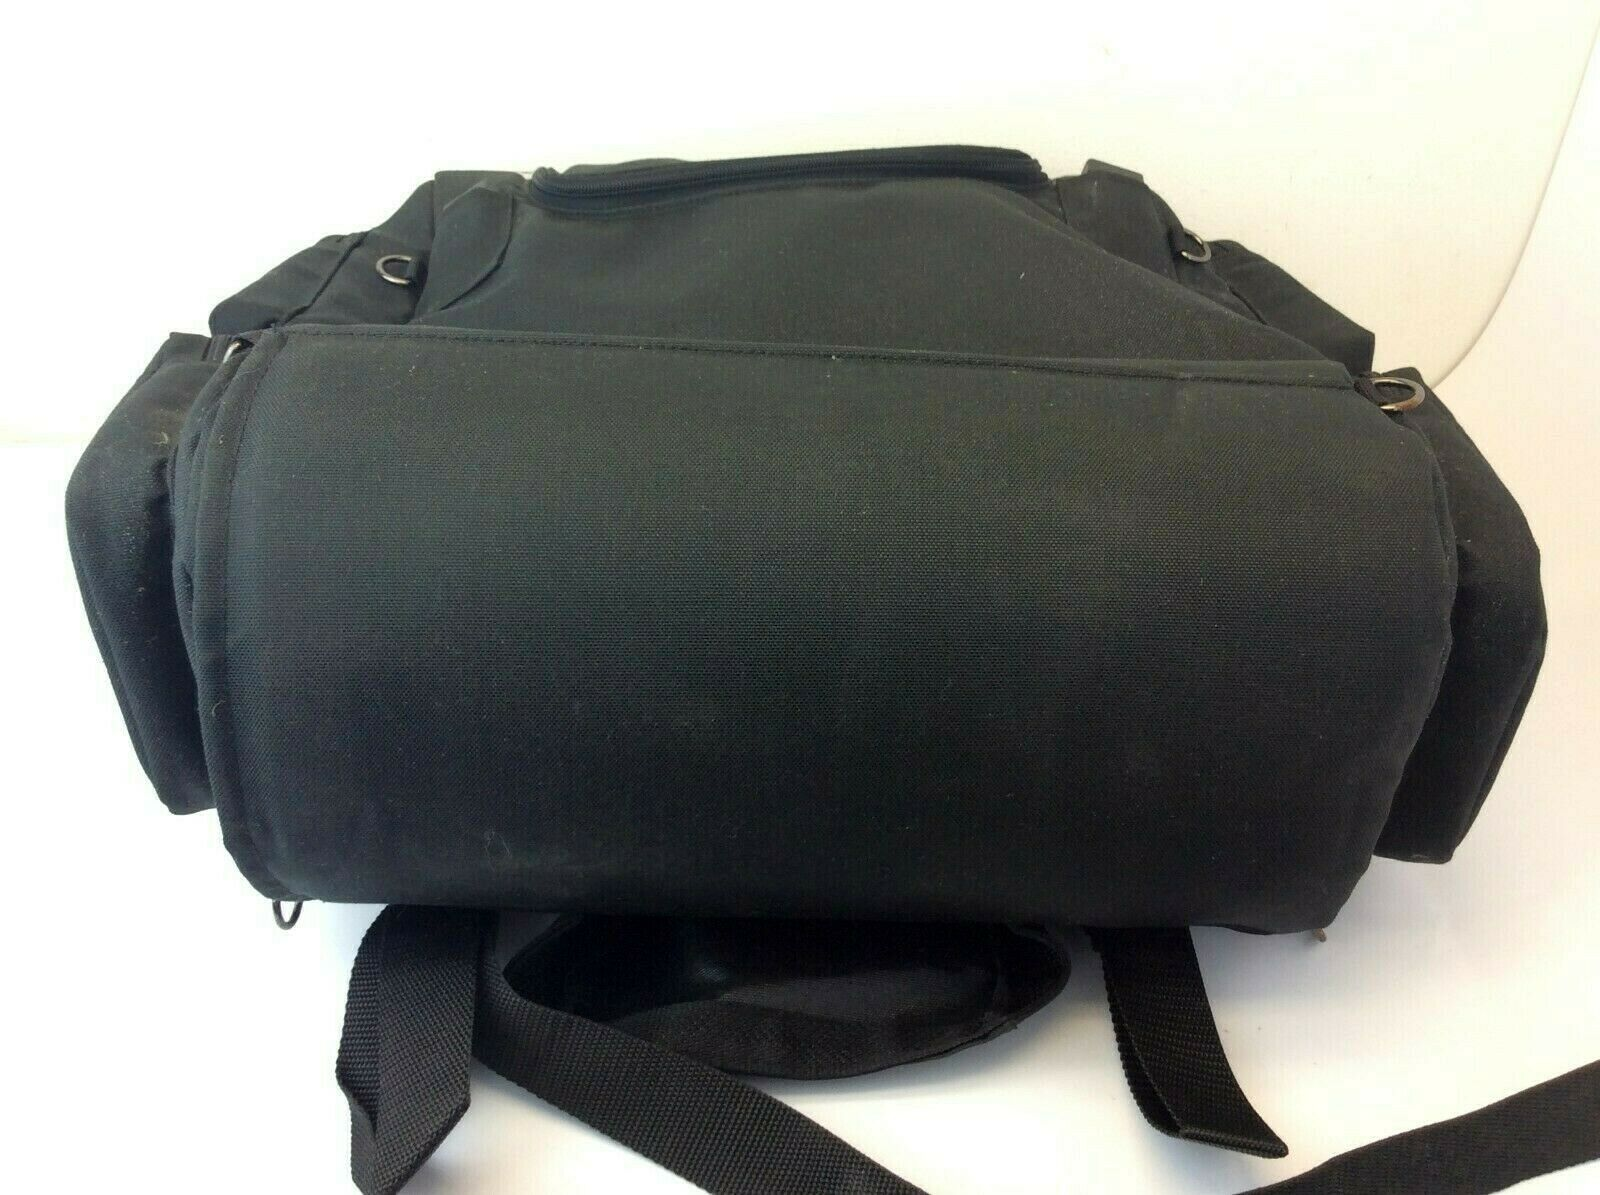 T-Bags Falcon Top Bag Black 104993